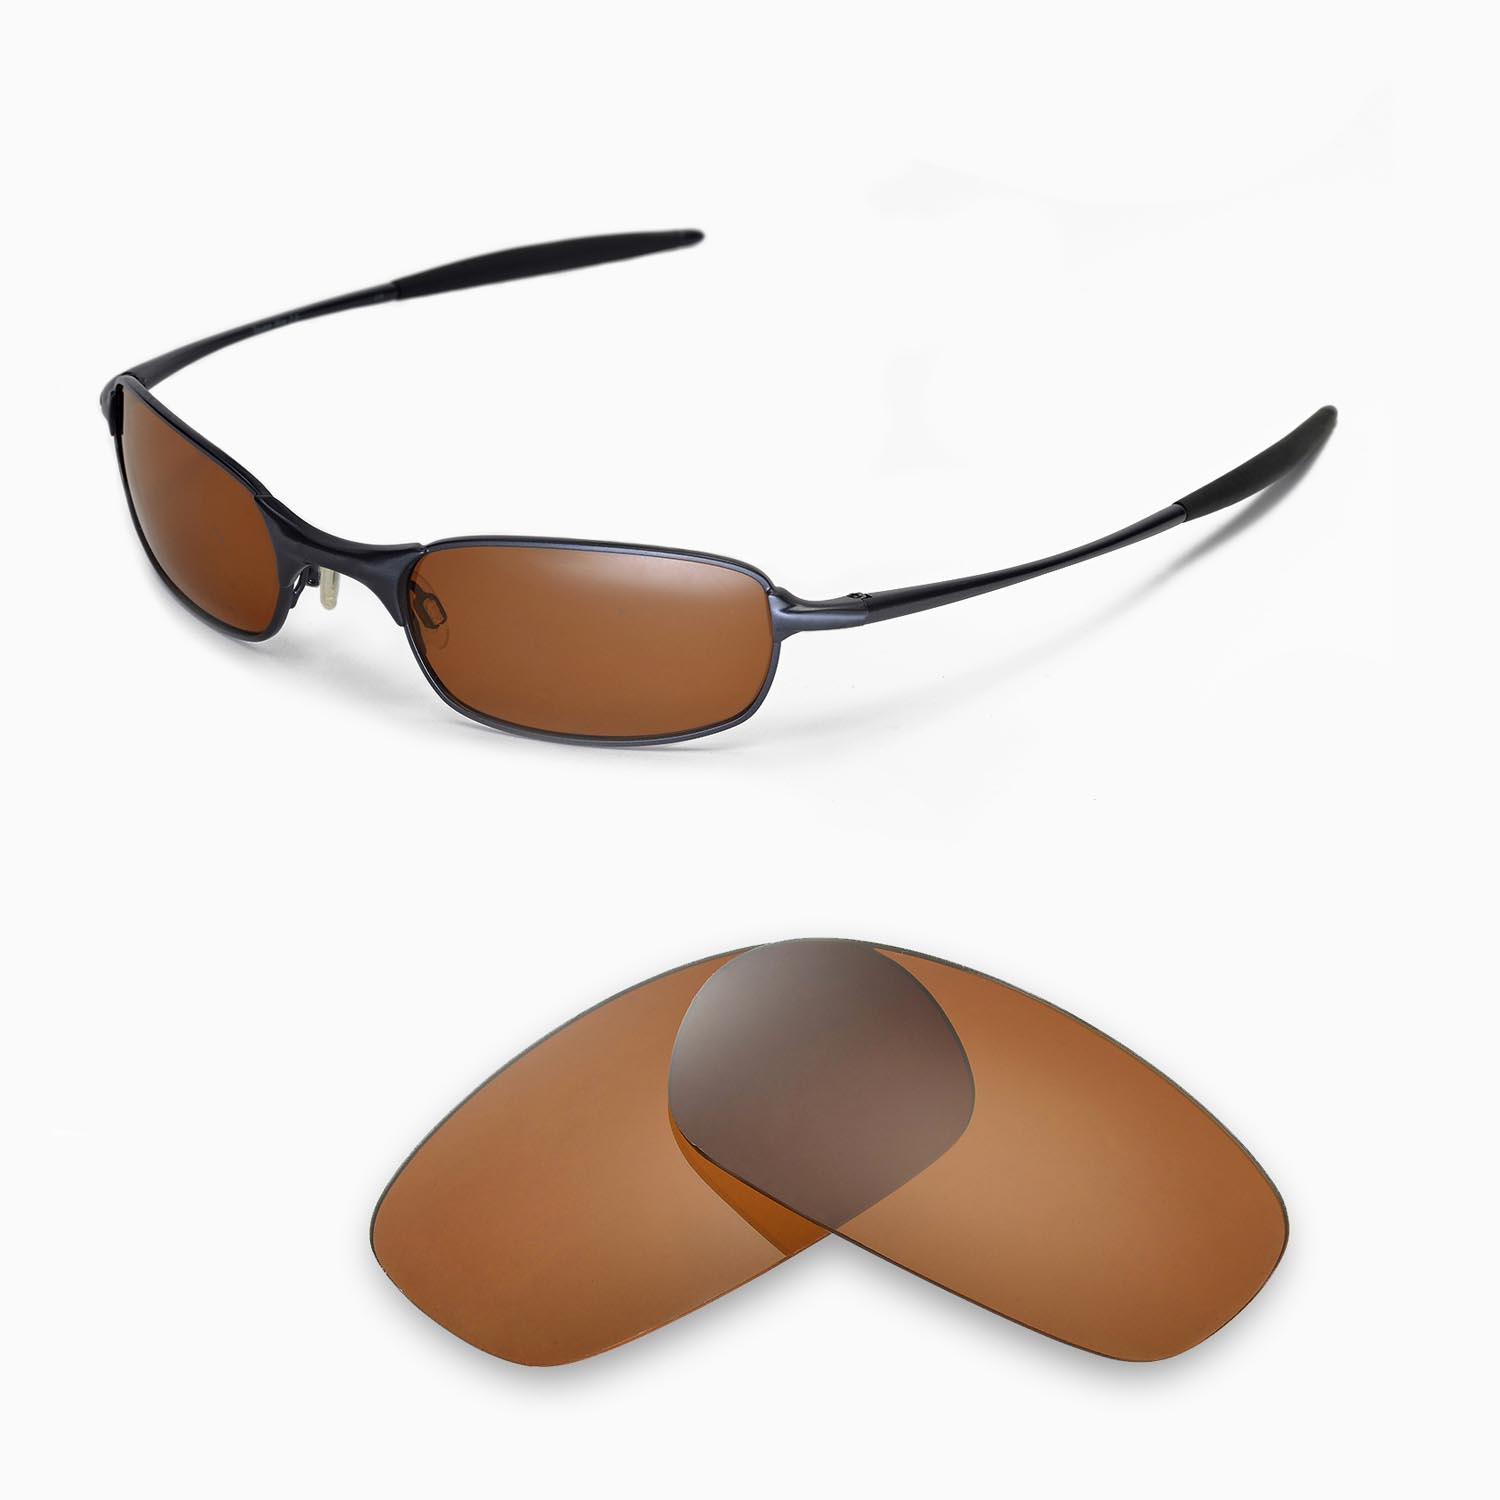 af7f24606d8 WL Replacement Lenses for Oakley Square Wire 2.0 Sunglasses - Multiple  Options